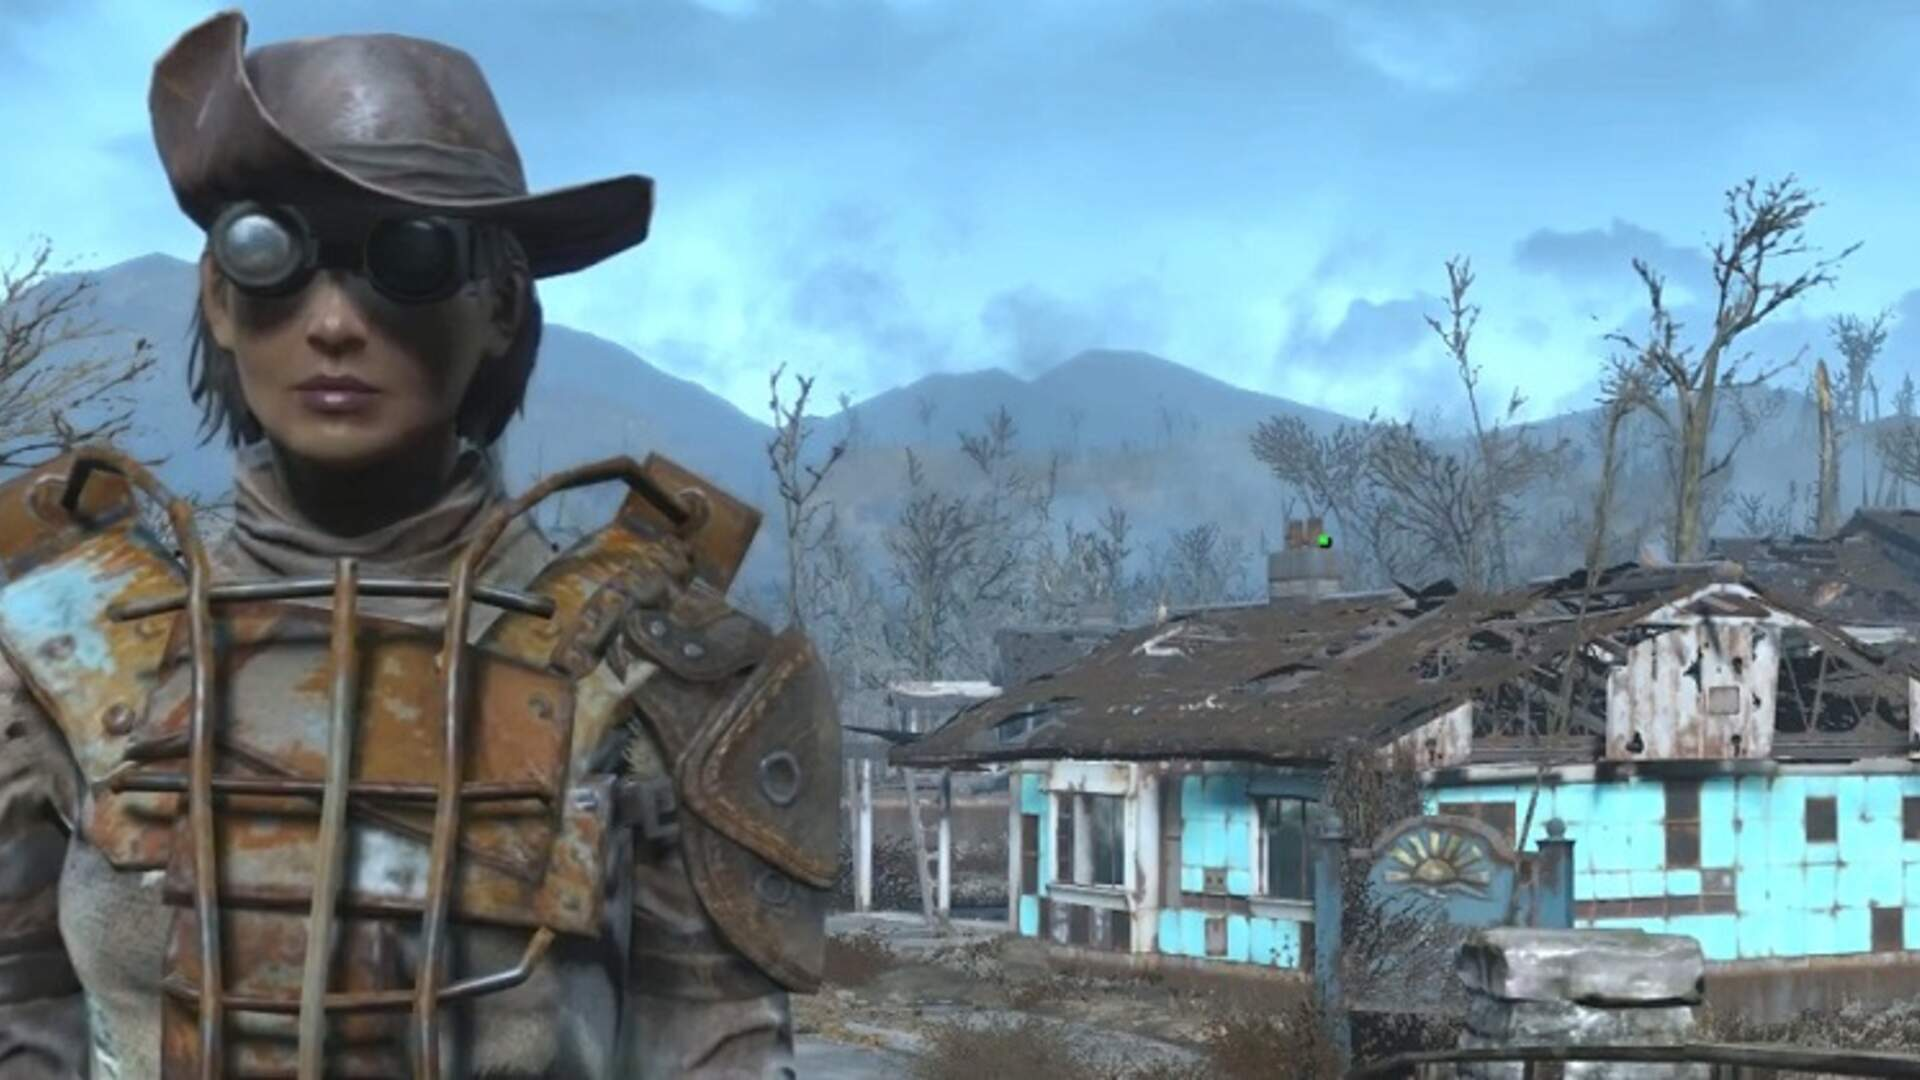 Fallout 4 Base Building, Settlement Guide - Food, Water, Power, Defense